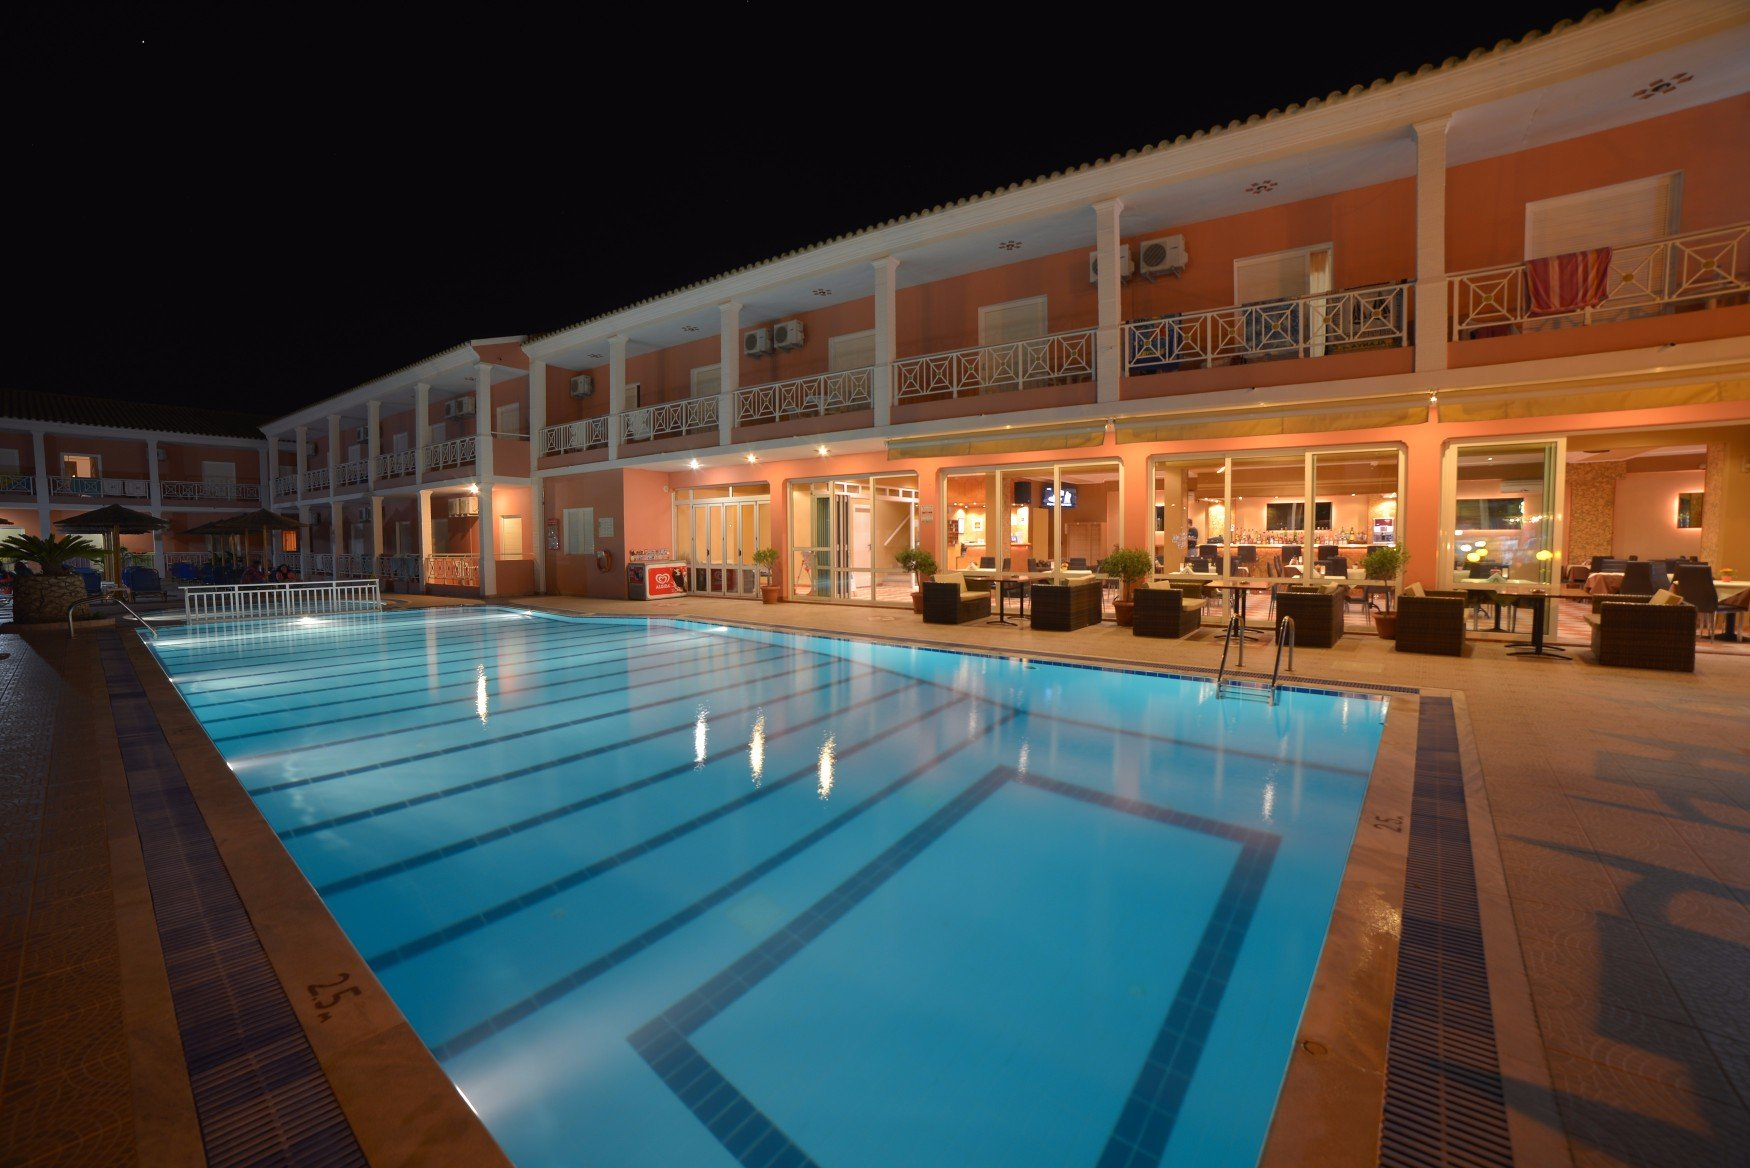 angelina-hotel-sidari-corfu-pool-area-at-night-2